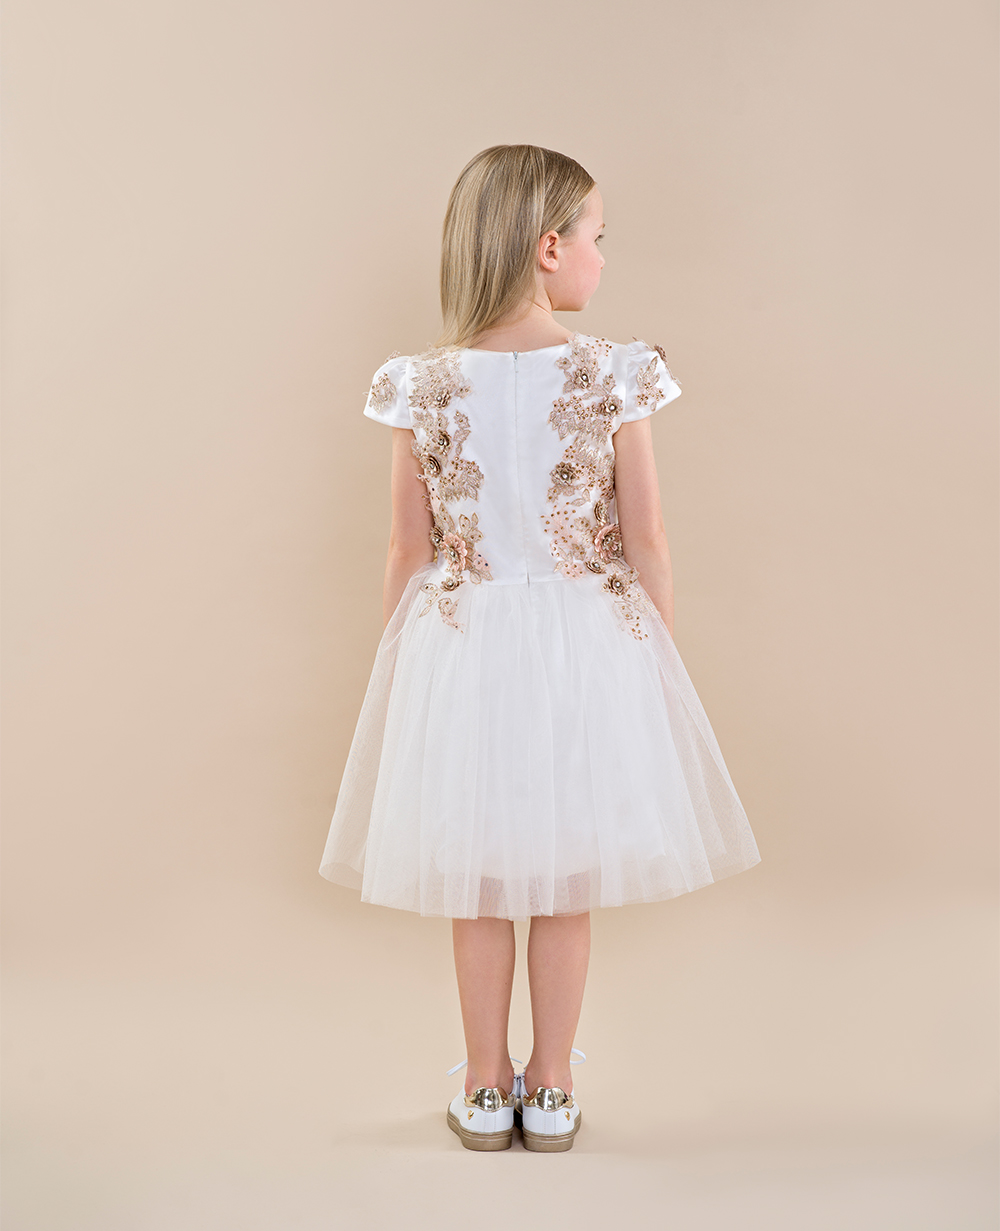 White and Pink Wedding Dress White Lace Dress Short Sleeve Tulle skirt